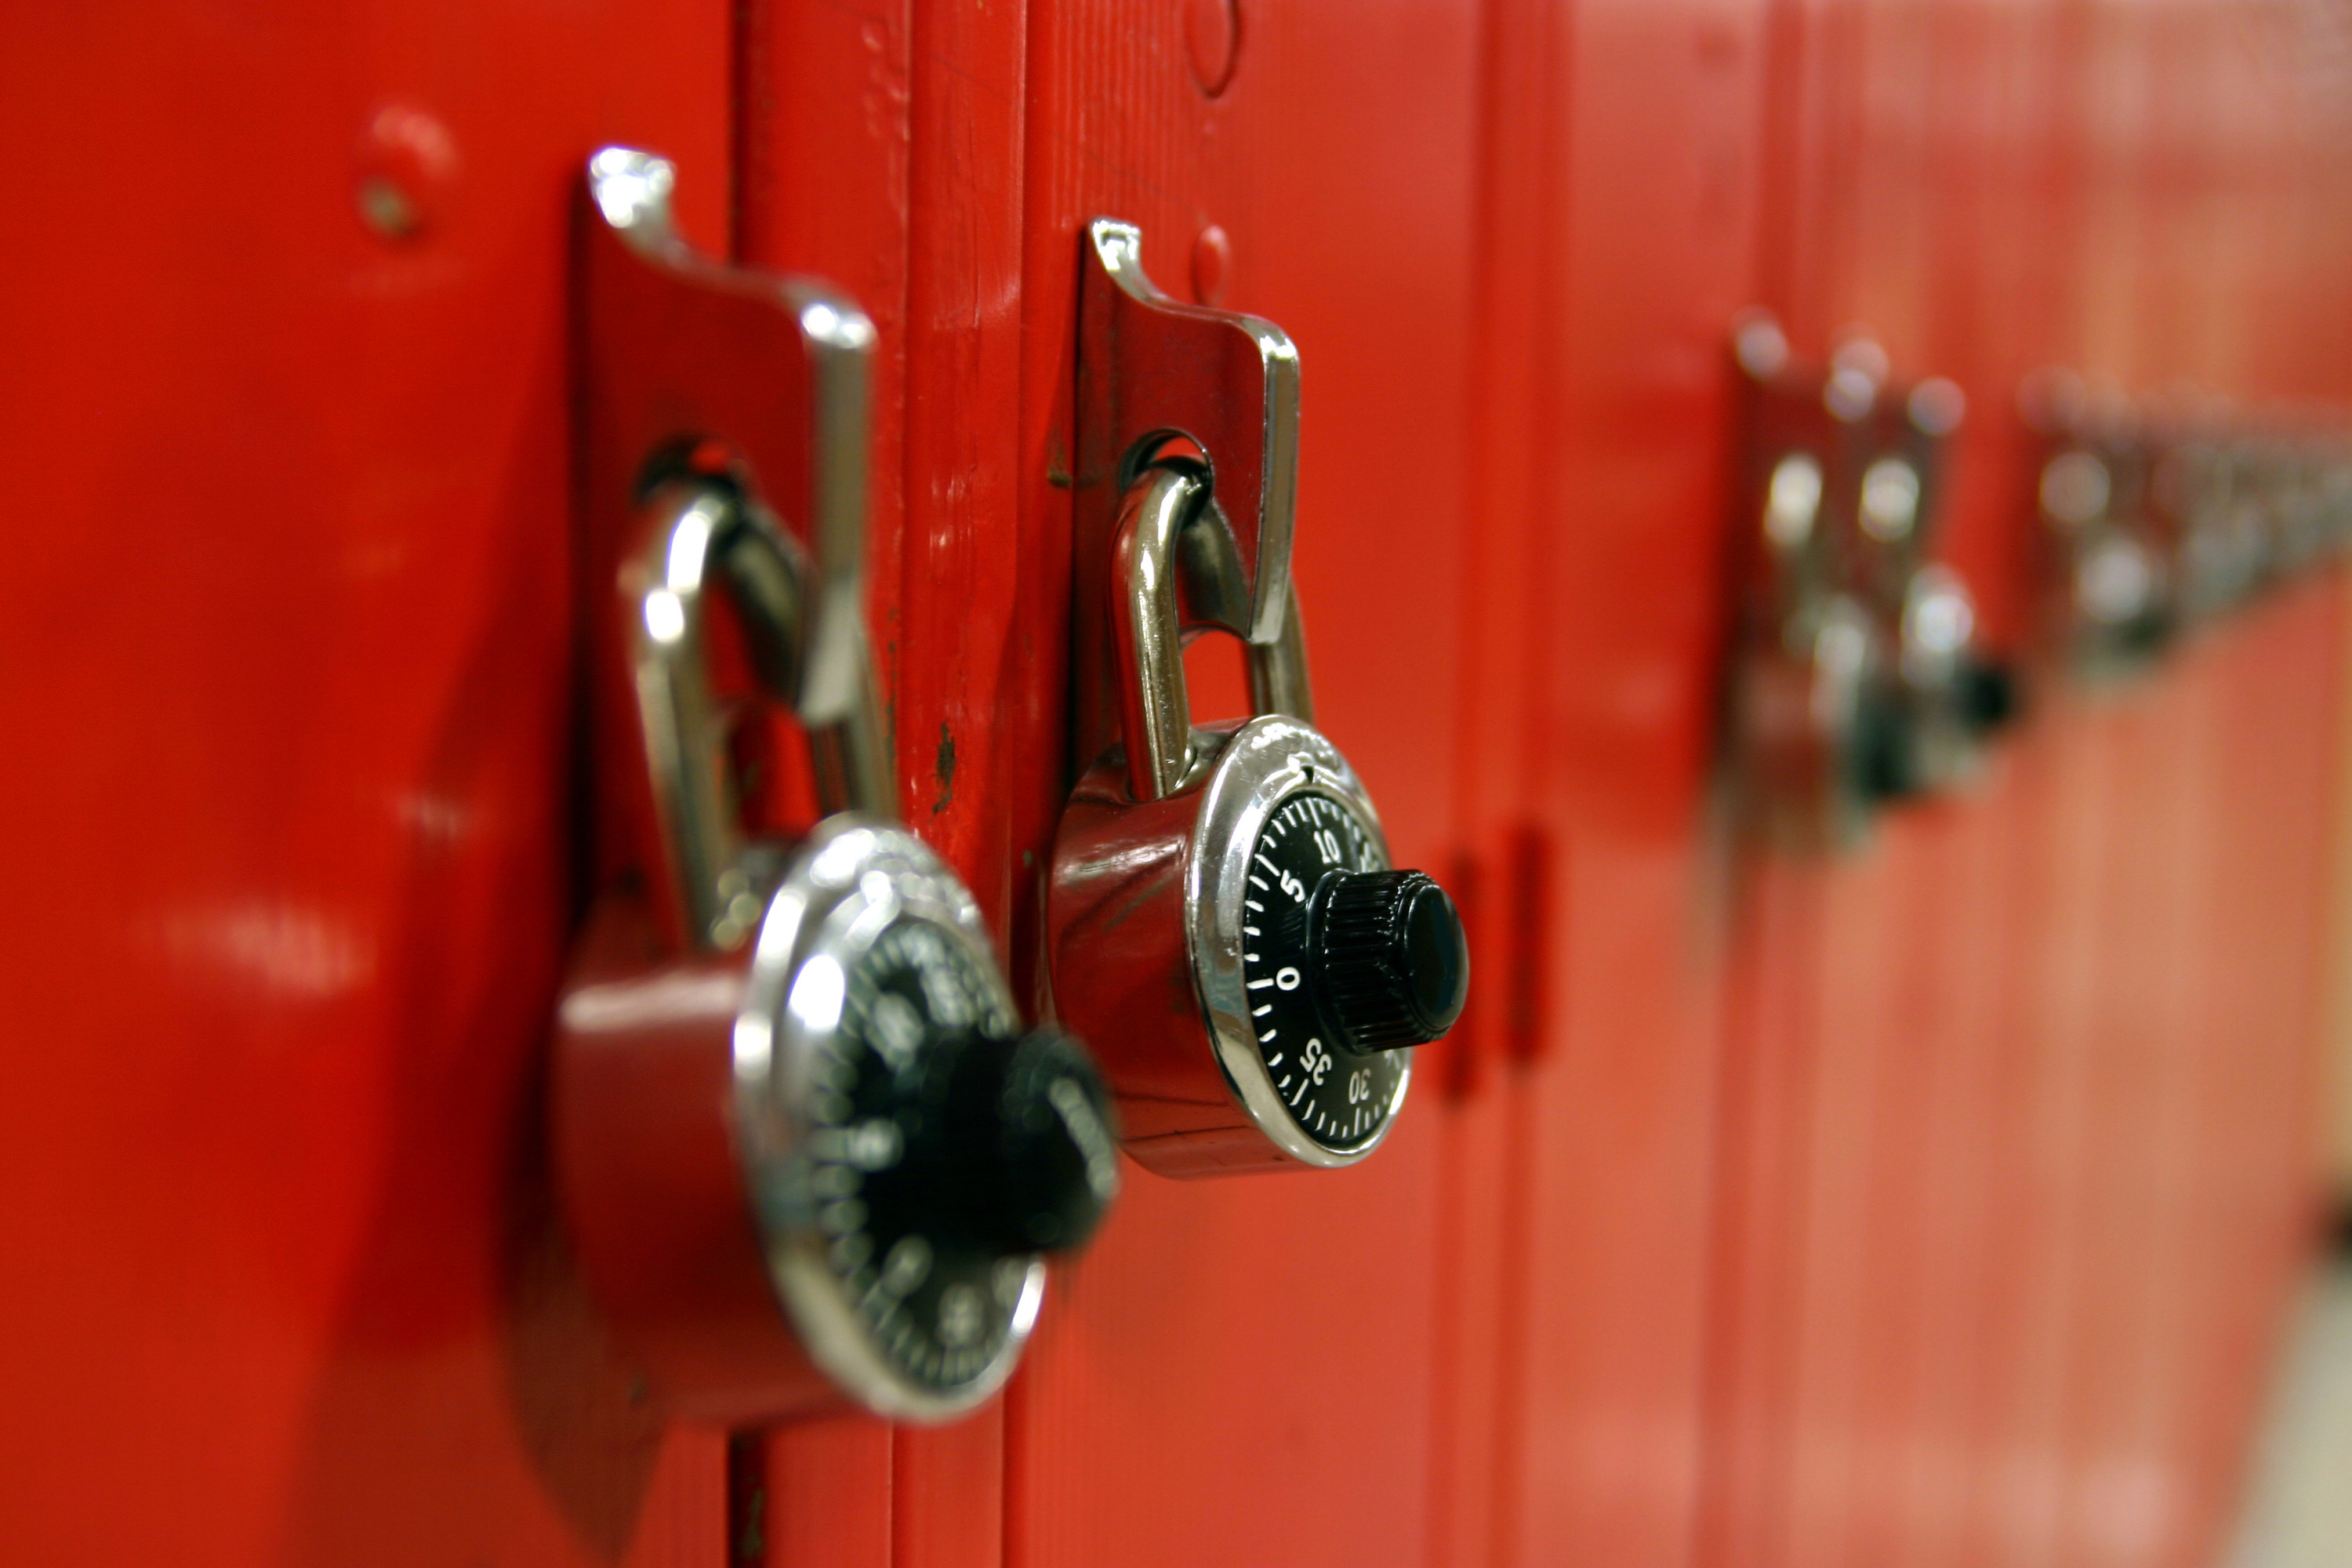 A row of lockers with locks on them